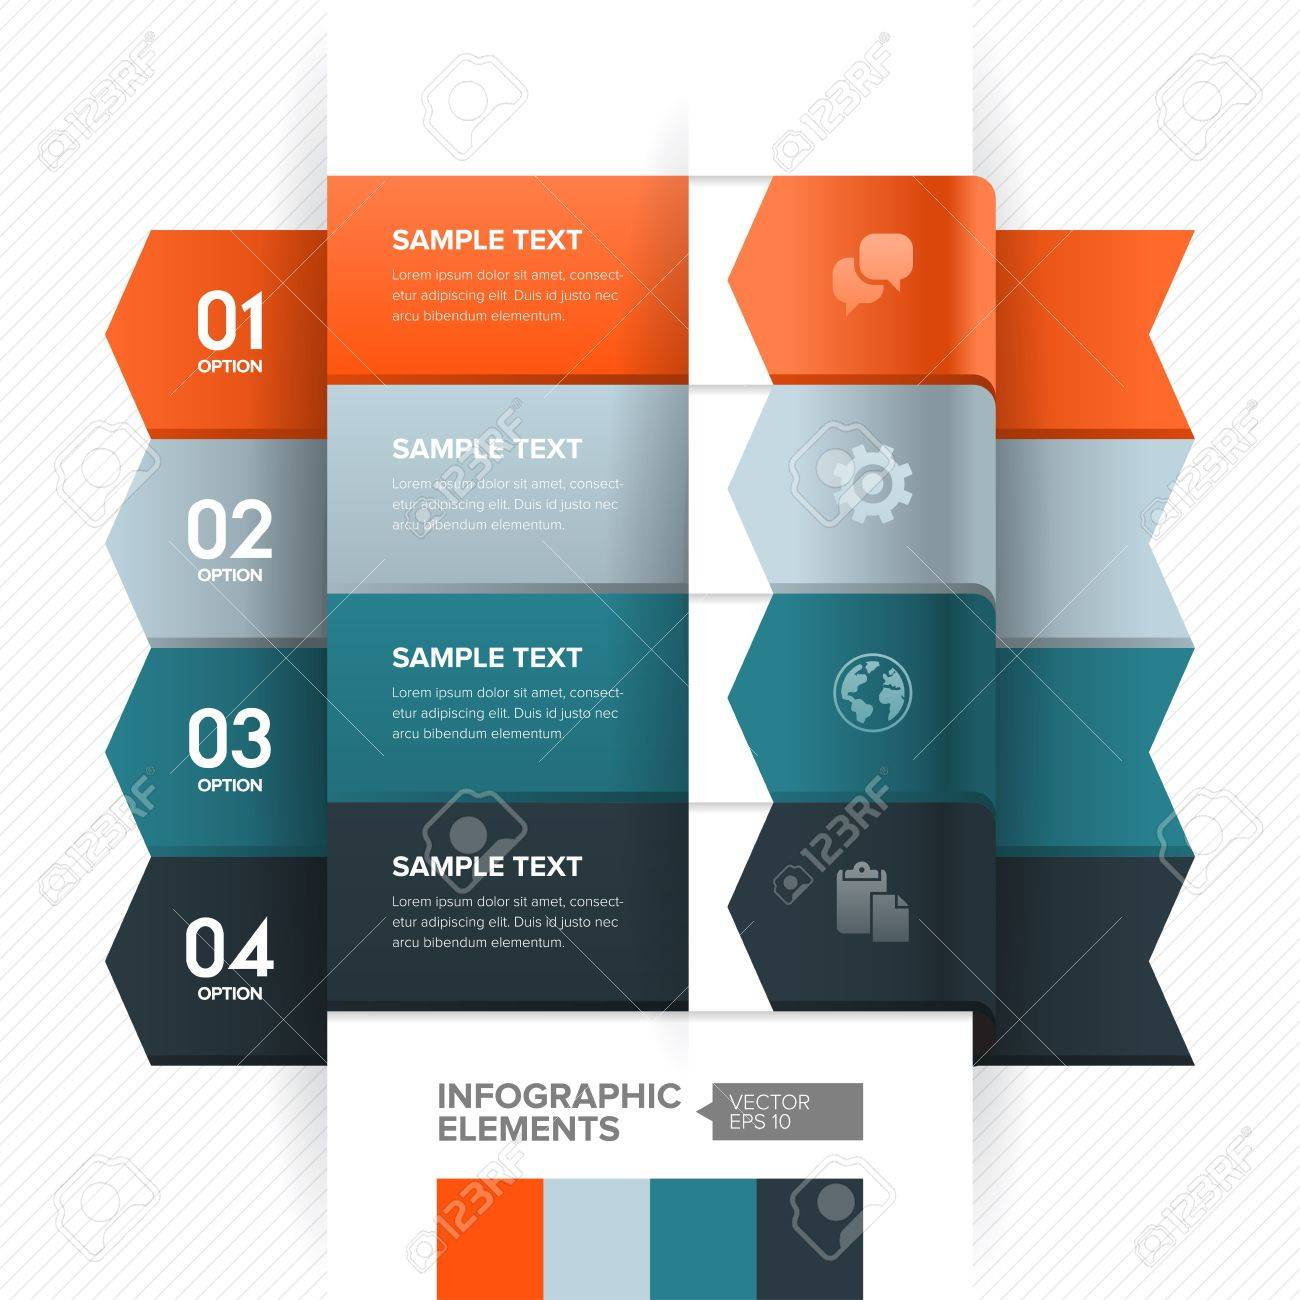 numbered banner design template modern business style for numbered banner design template modern business style for info graphic website advertisement